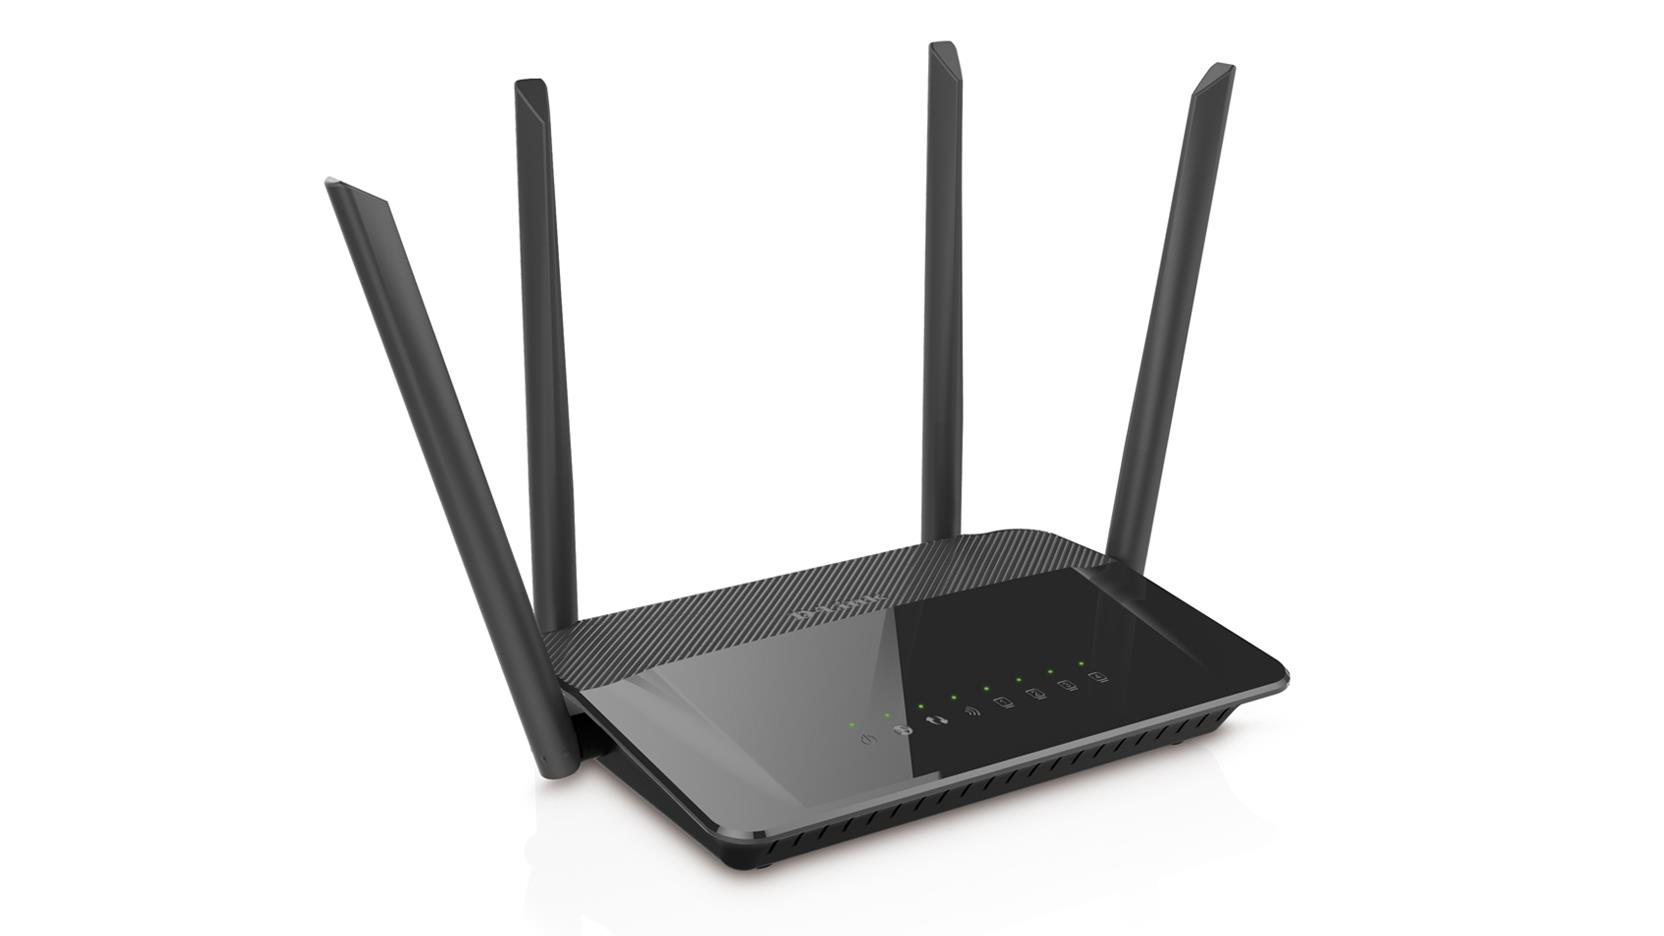 D-LINK WIRELESS AC1200 DUAL BAND GIGABIT ROUTER WITH 4 ANTENNA